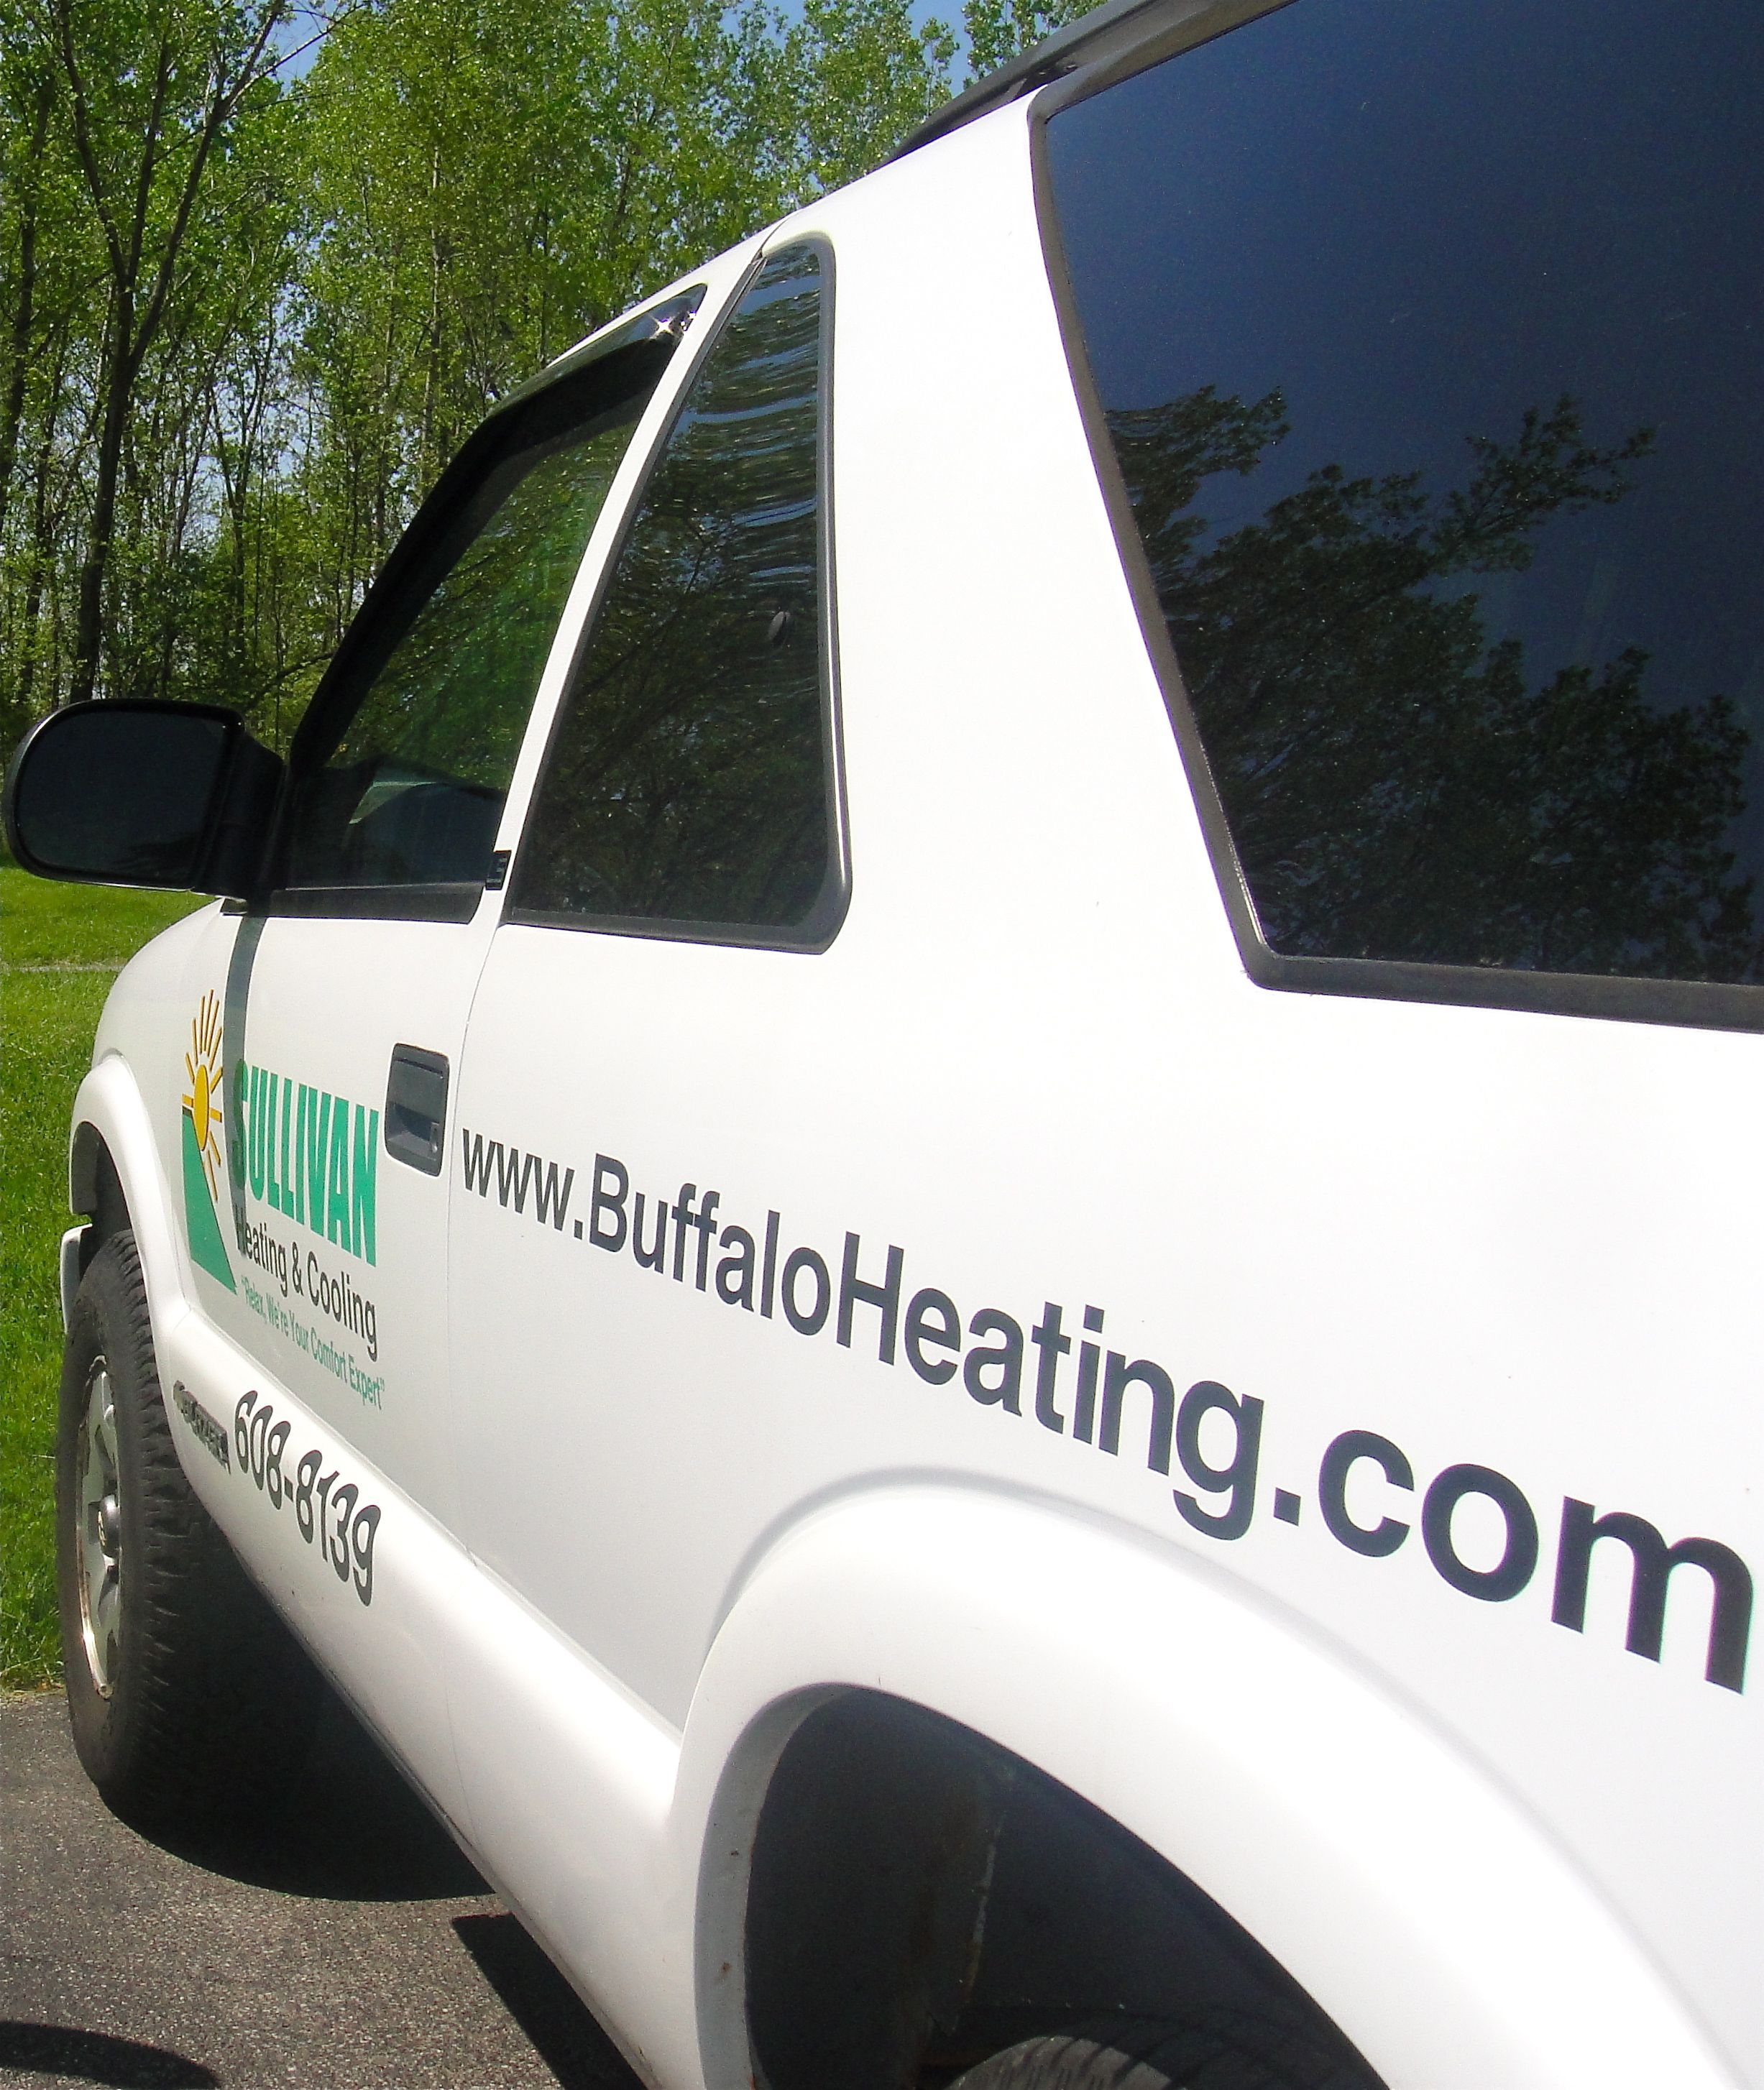 Sullivan Heating Buffalo Air Conditioning Equipment Air